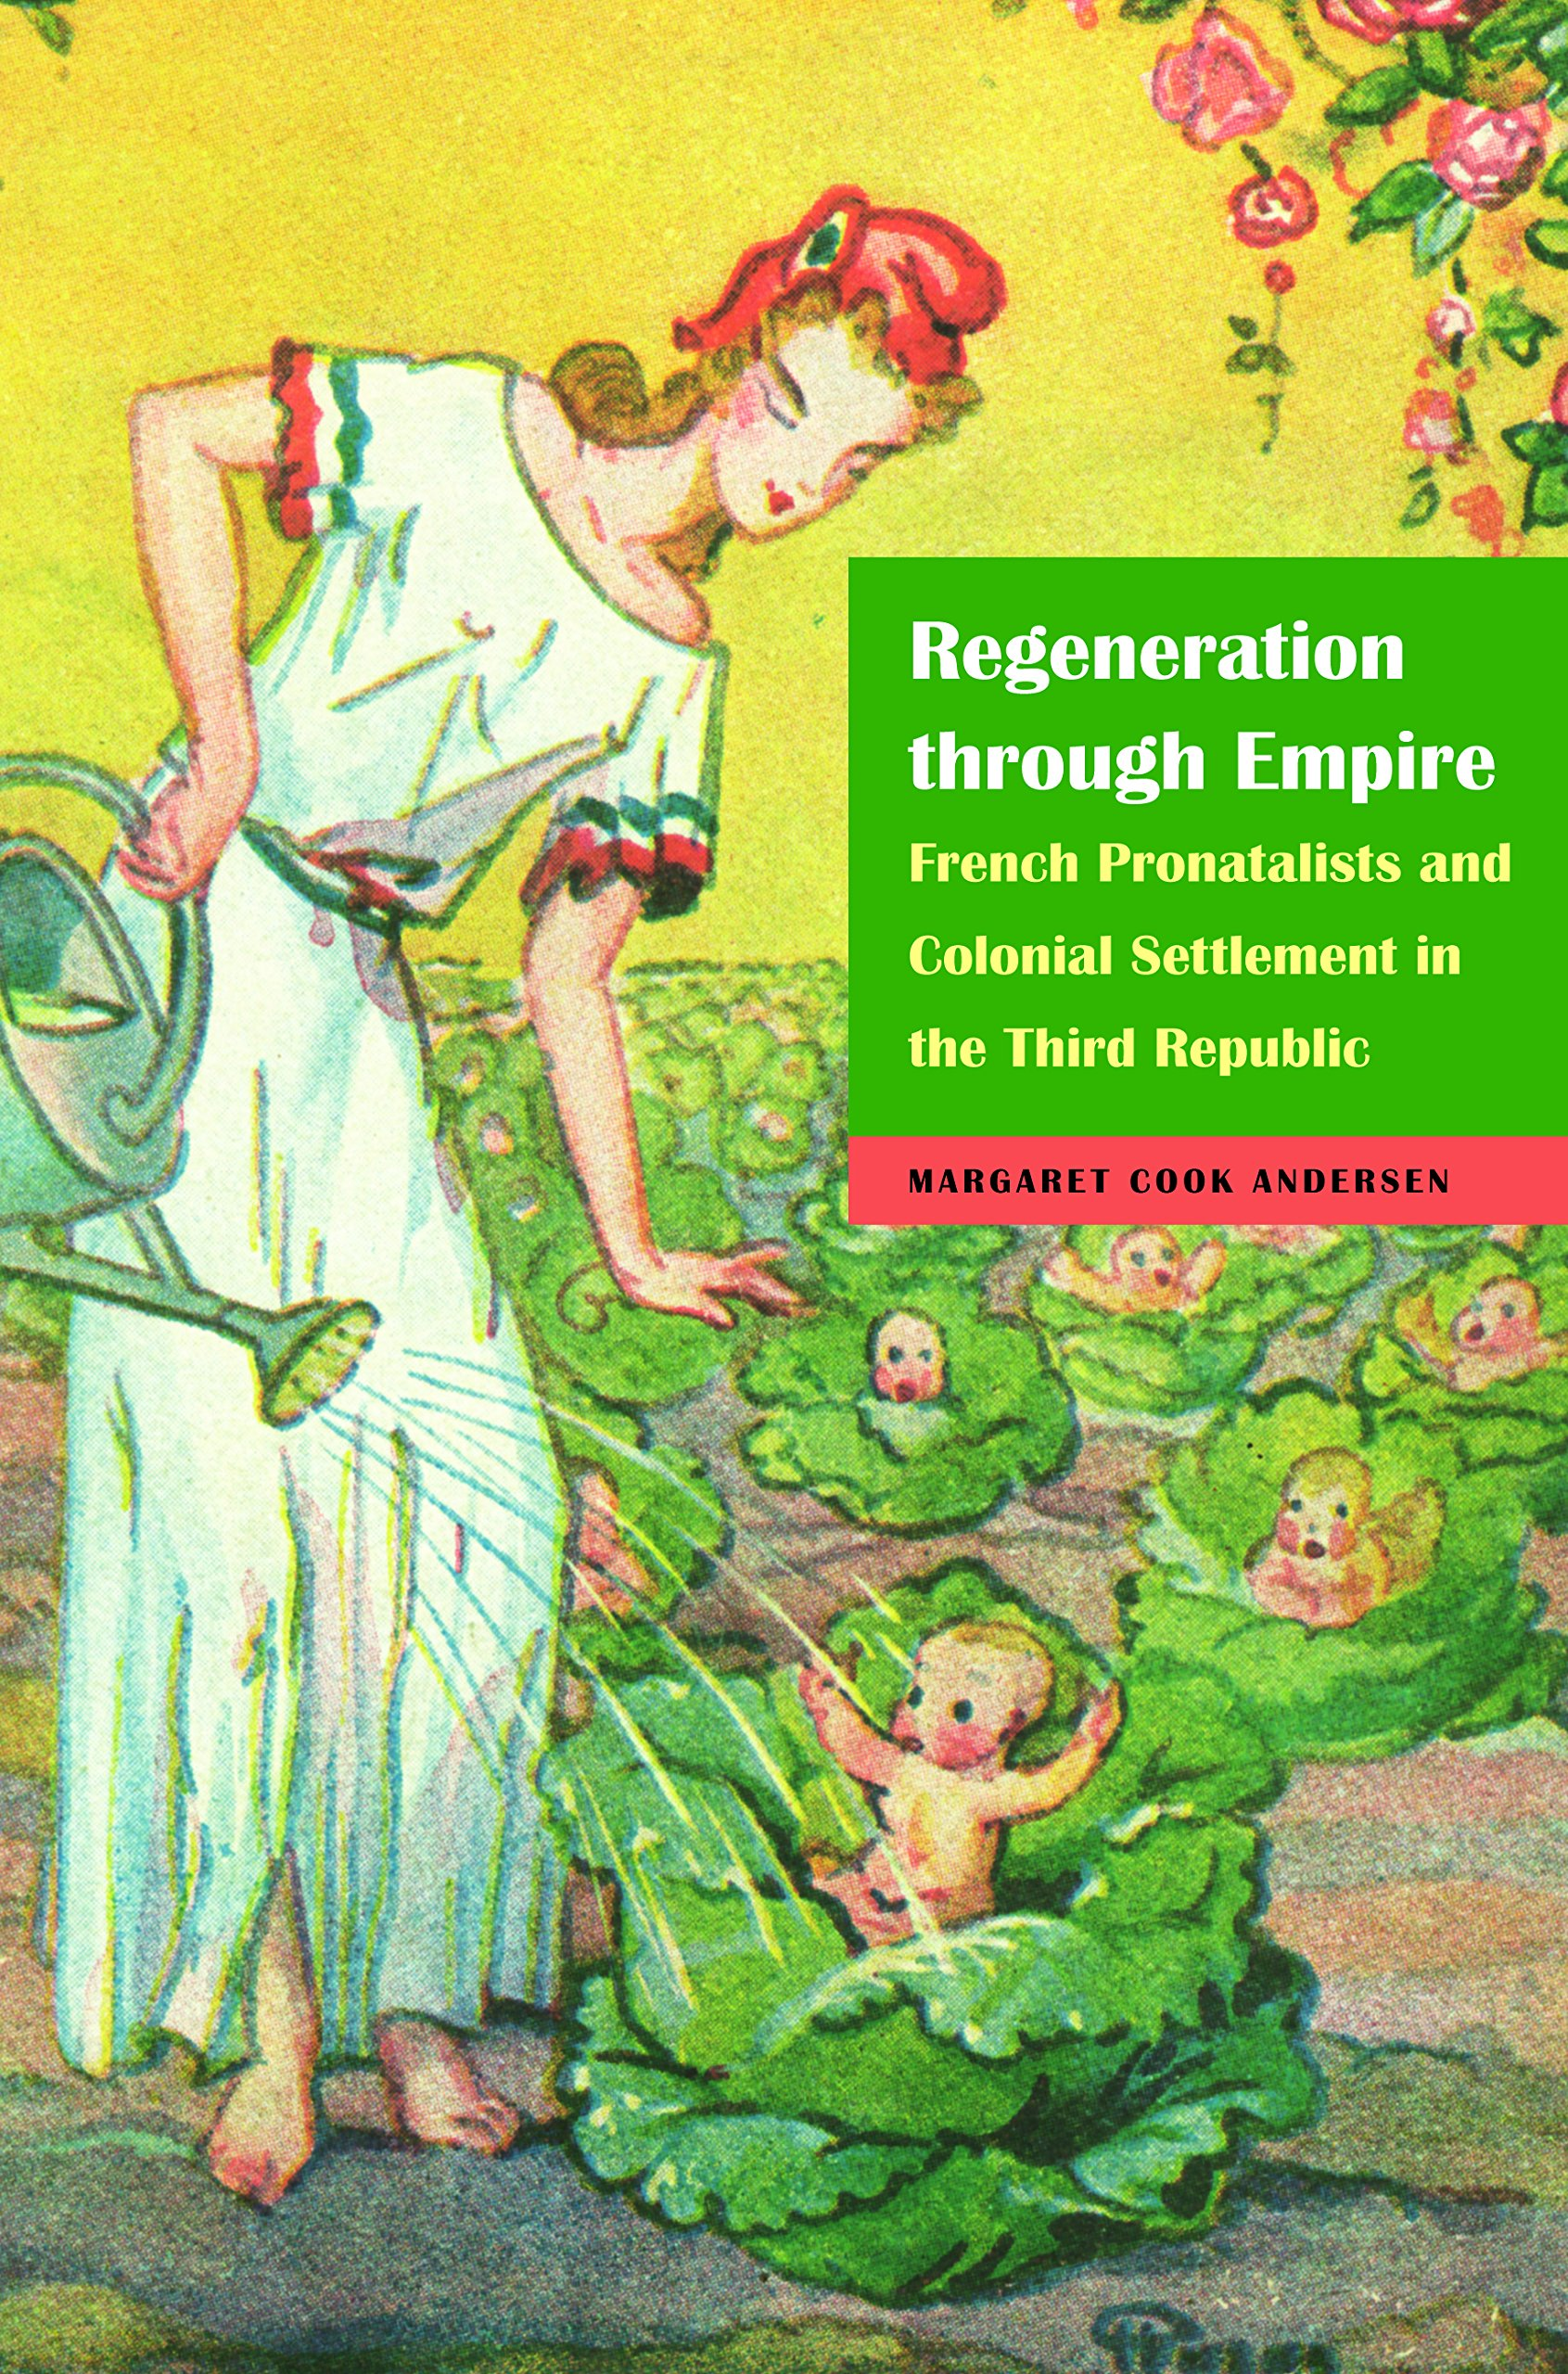 - Margaret Andersen is associate professor of history at UT, and author of Regeneration through Empire: French Pronatalists and Colonial Settlement in the Third Republic (University of Nebraska Press, 2015).